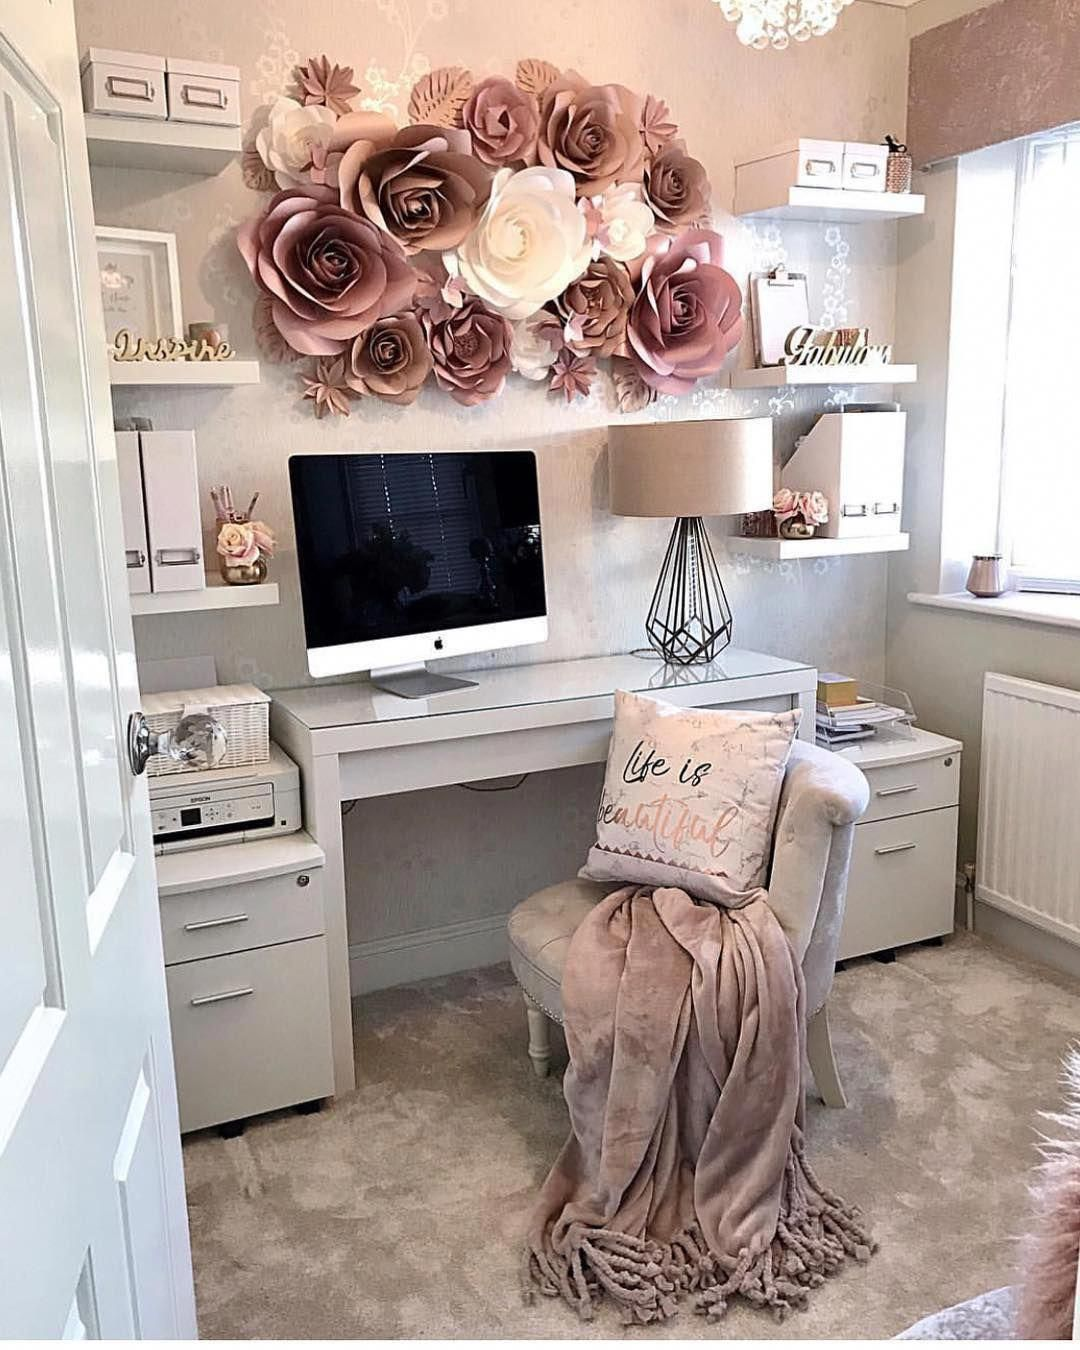 Bedroom Decorating Ideas Bedroom Decorating Tips On A Budget Redecorating On A Budget Ideas 201903 Cozy Home Office Feminine Home Offices Home Office Decor